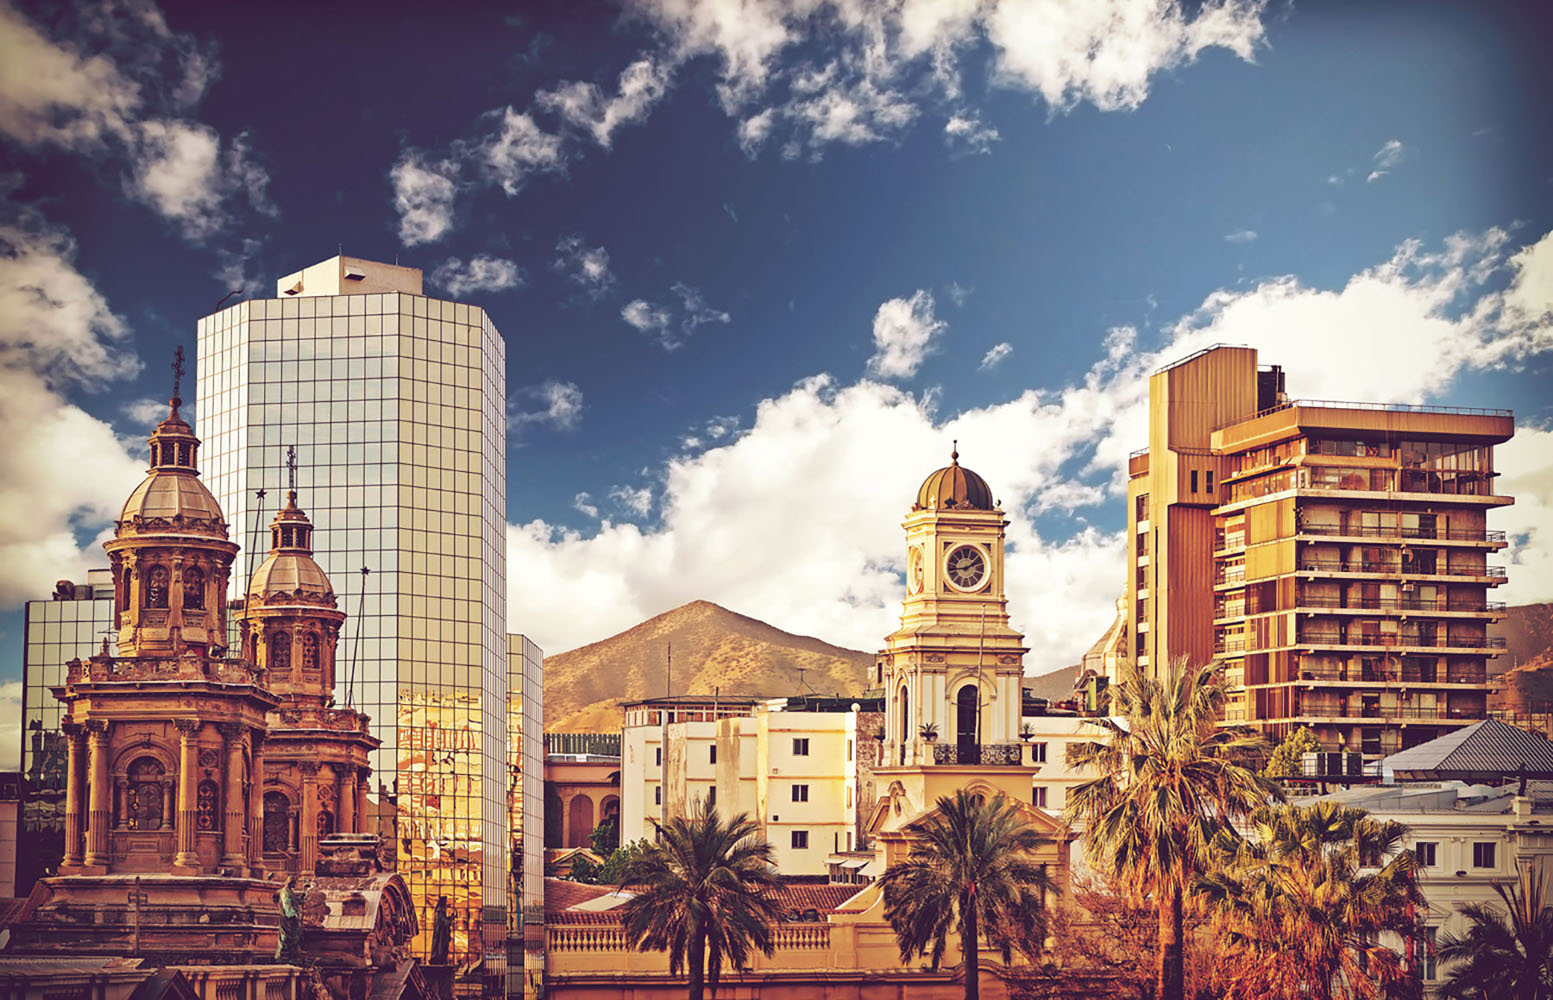 The diverse architecture of Santiago, Chile on a nice day